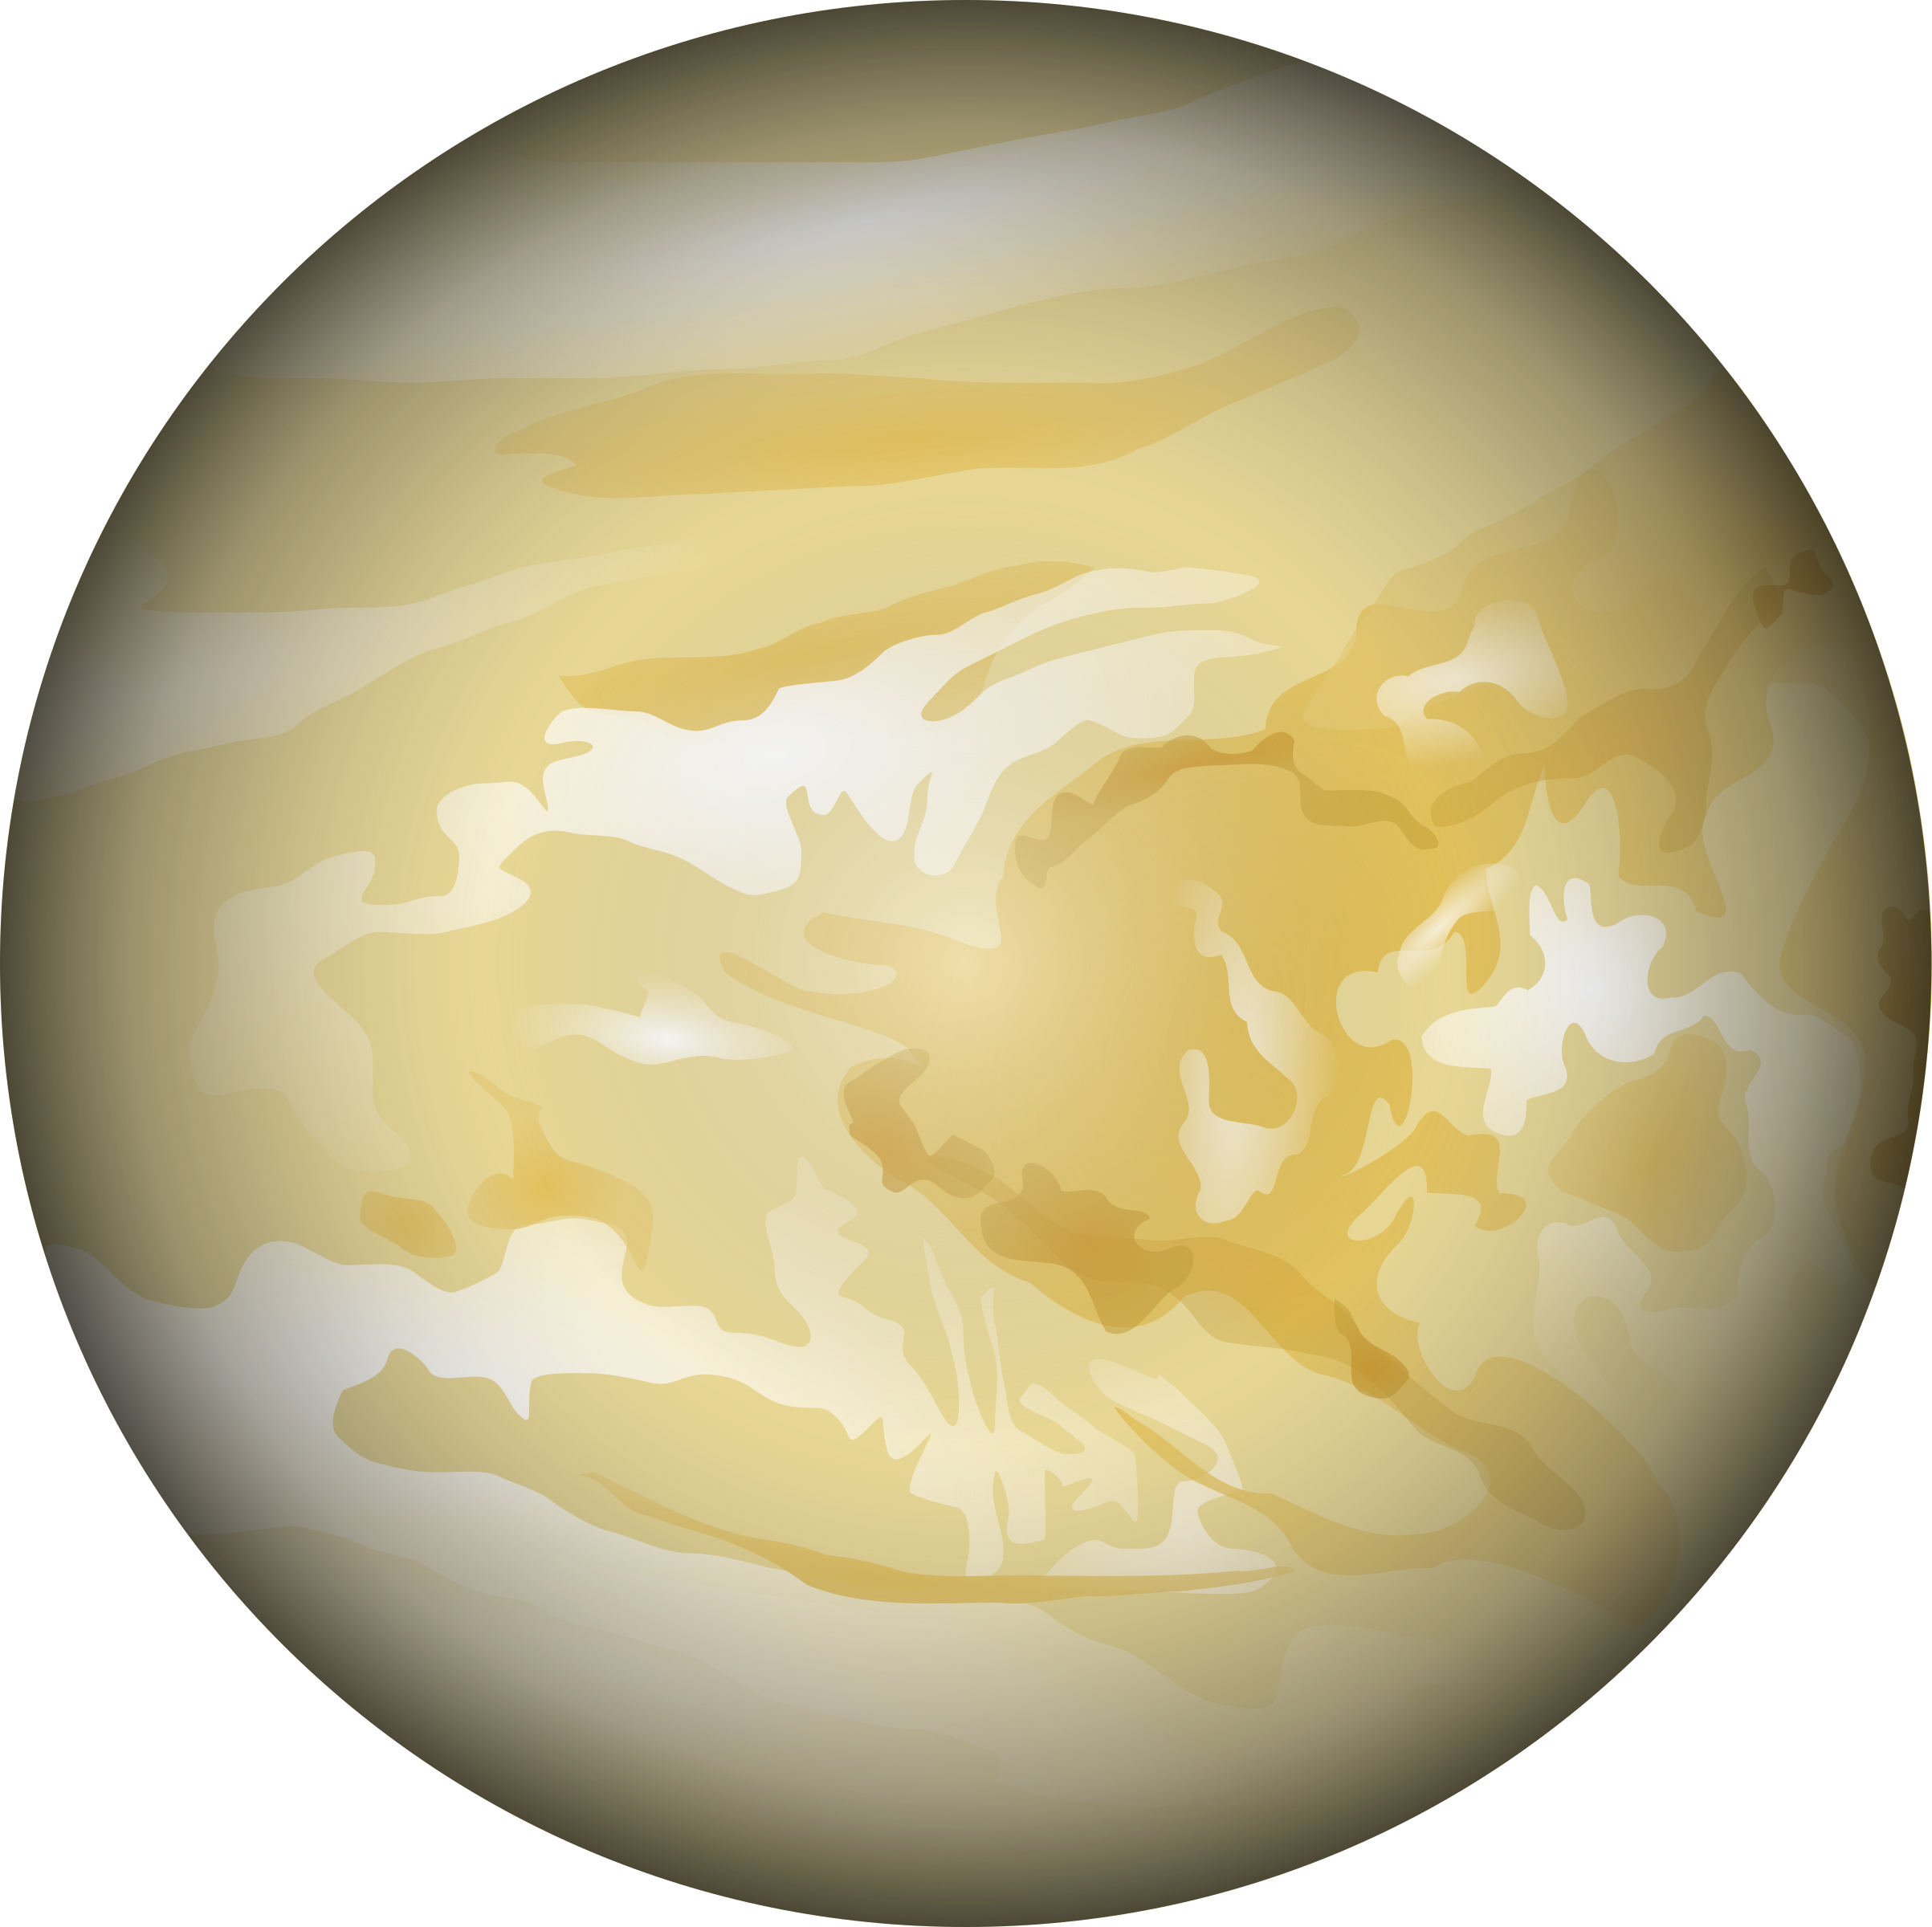 Venus Photos PNG Image